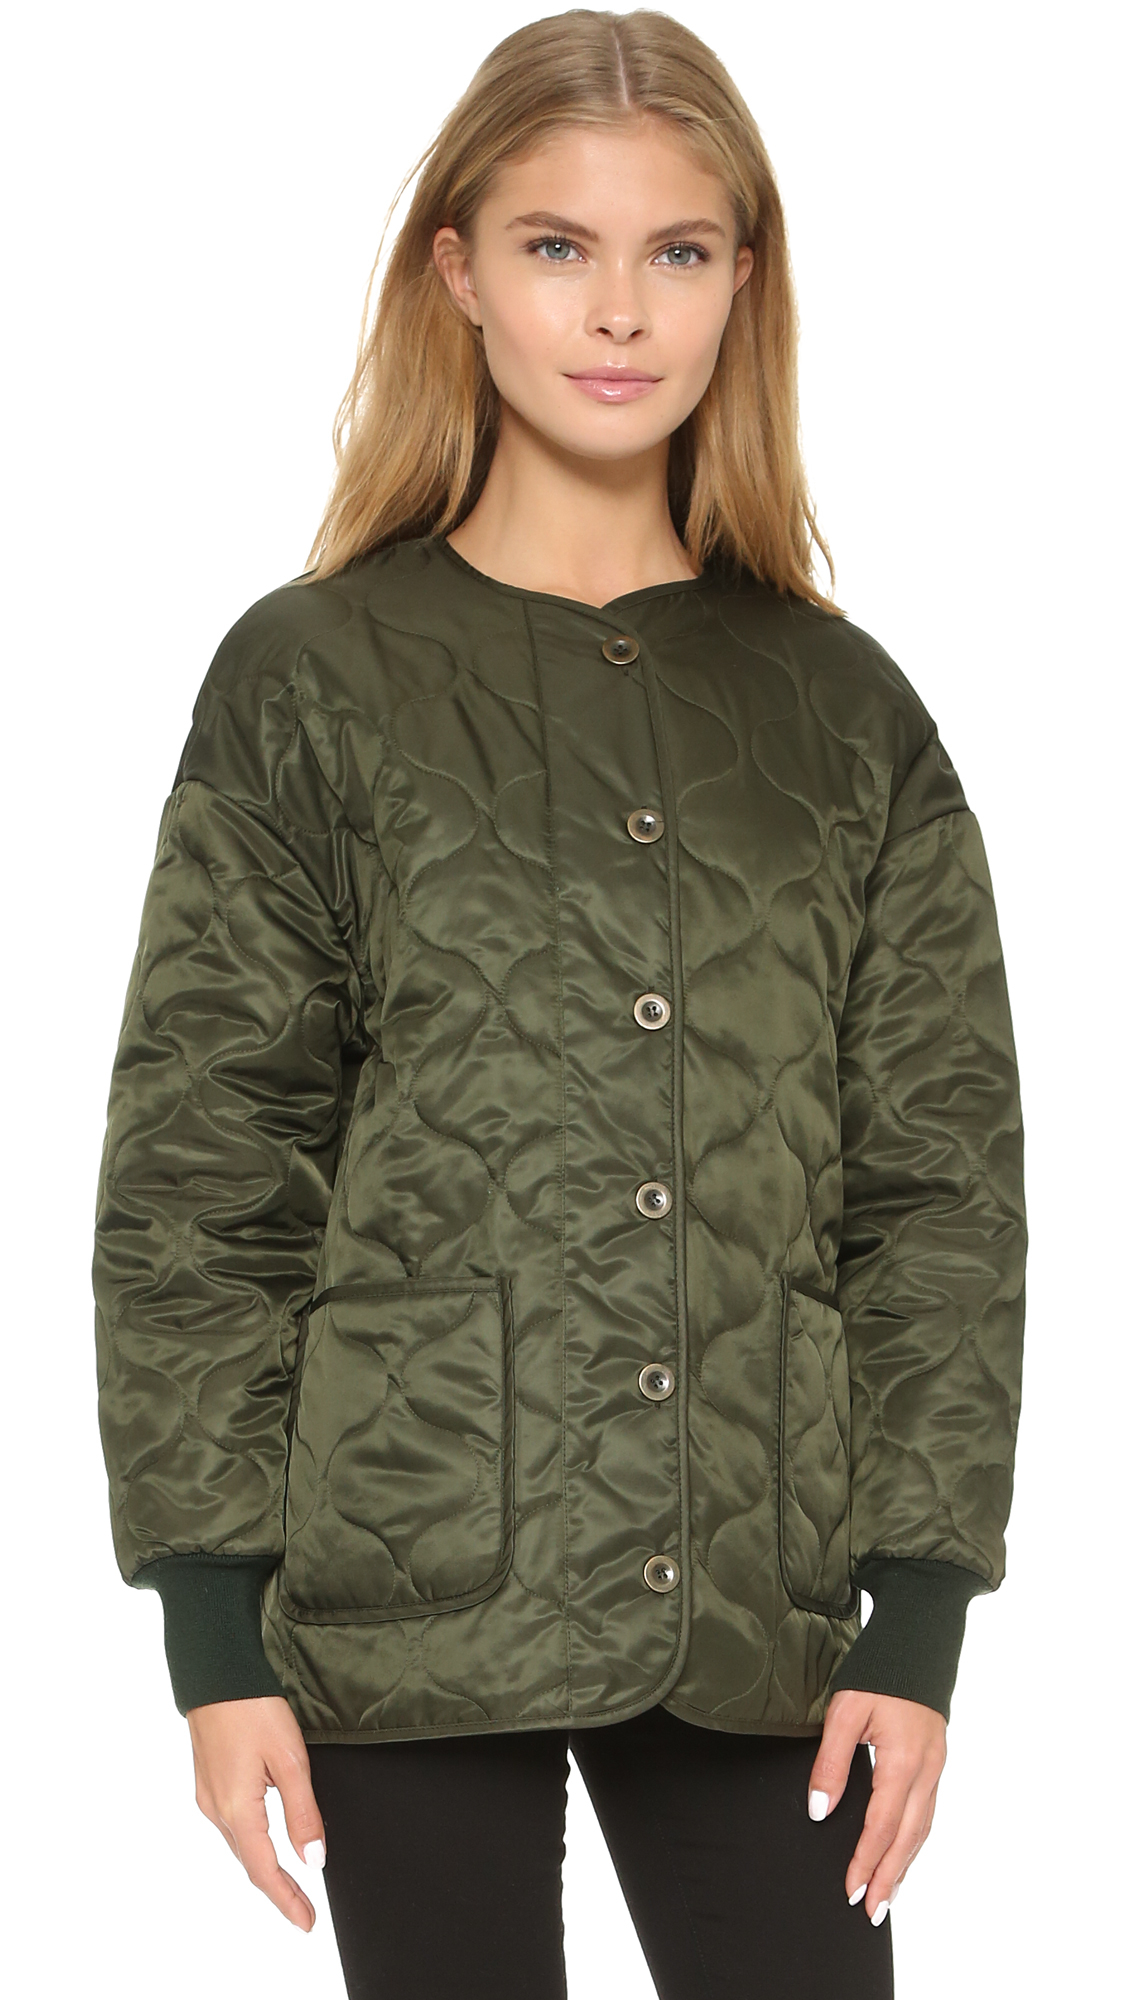 Sonia by sonia rykiel Quilted Jacket in Green | Lyst